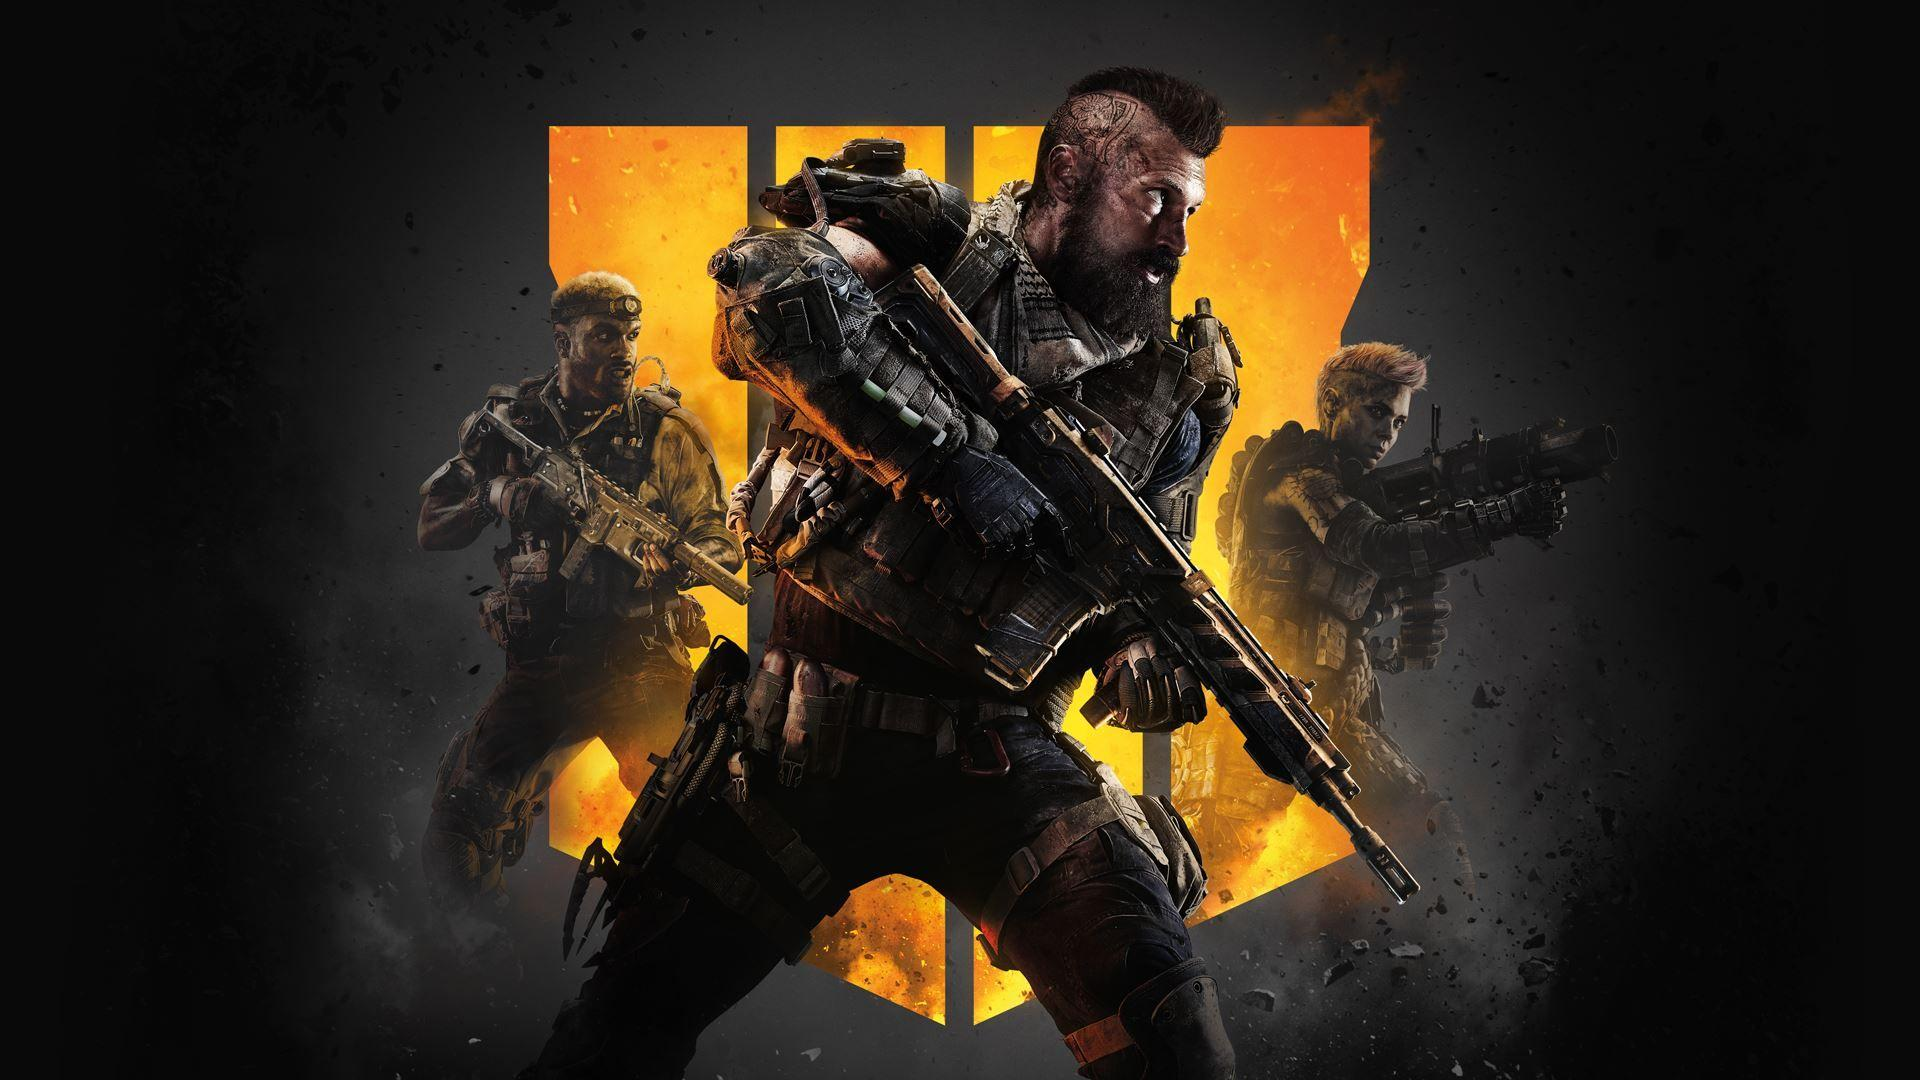 Cod Black Ops 4 Wallpapers Wallpaper Cave